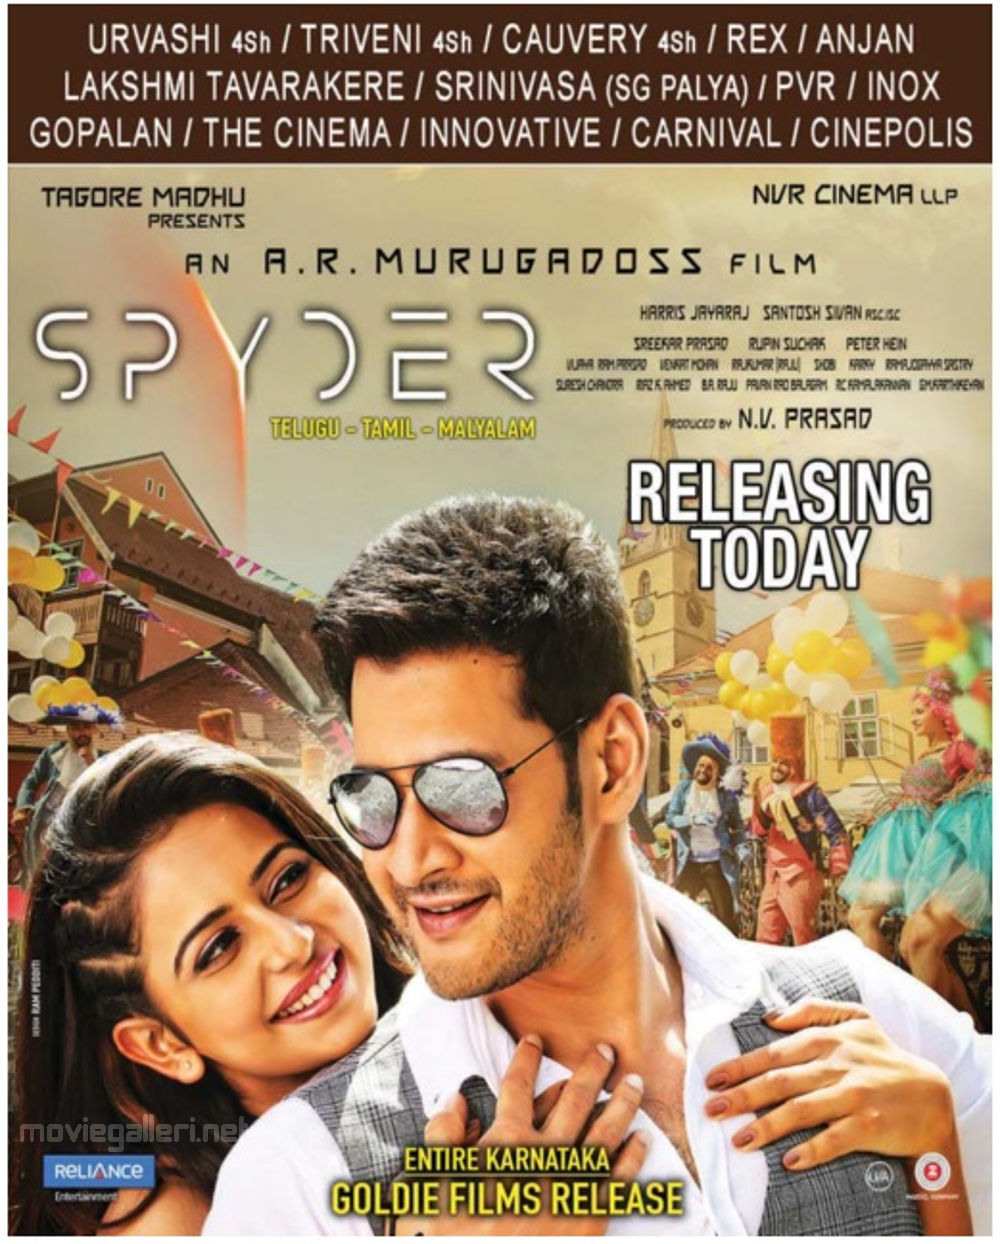 Rakul Preet, Mahesh Babu in Spyder Movie Release Bangalore Theatres List Poster